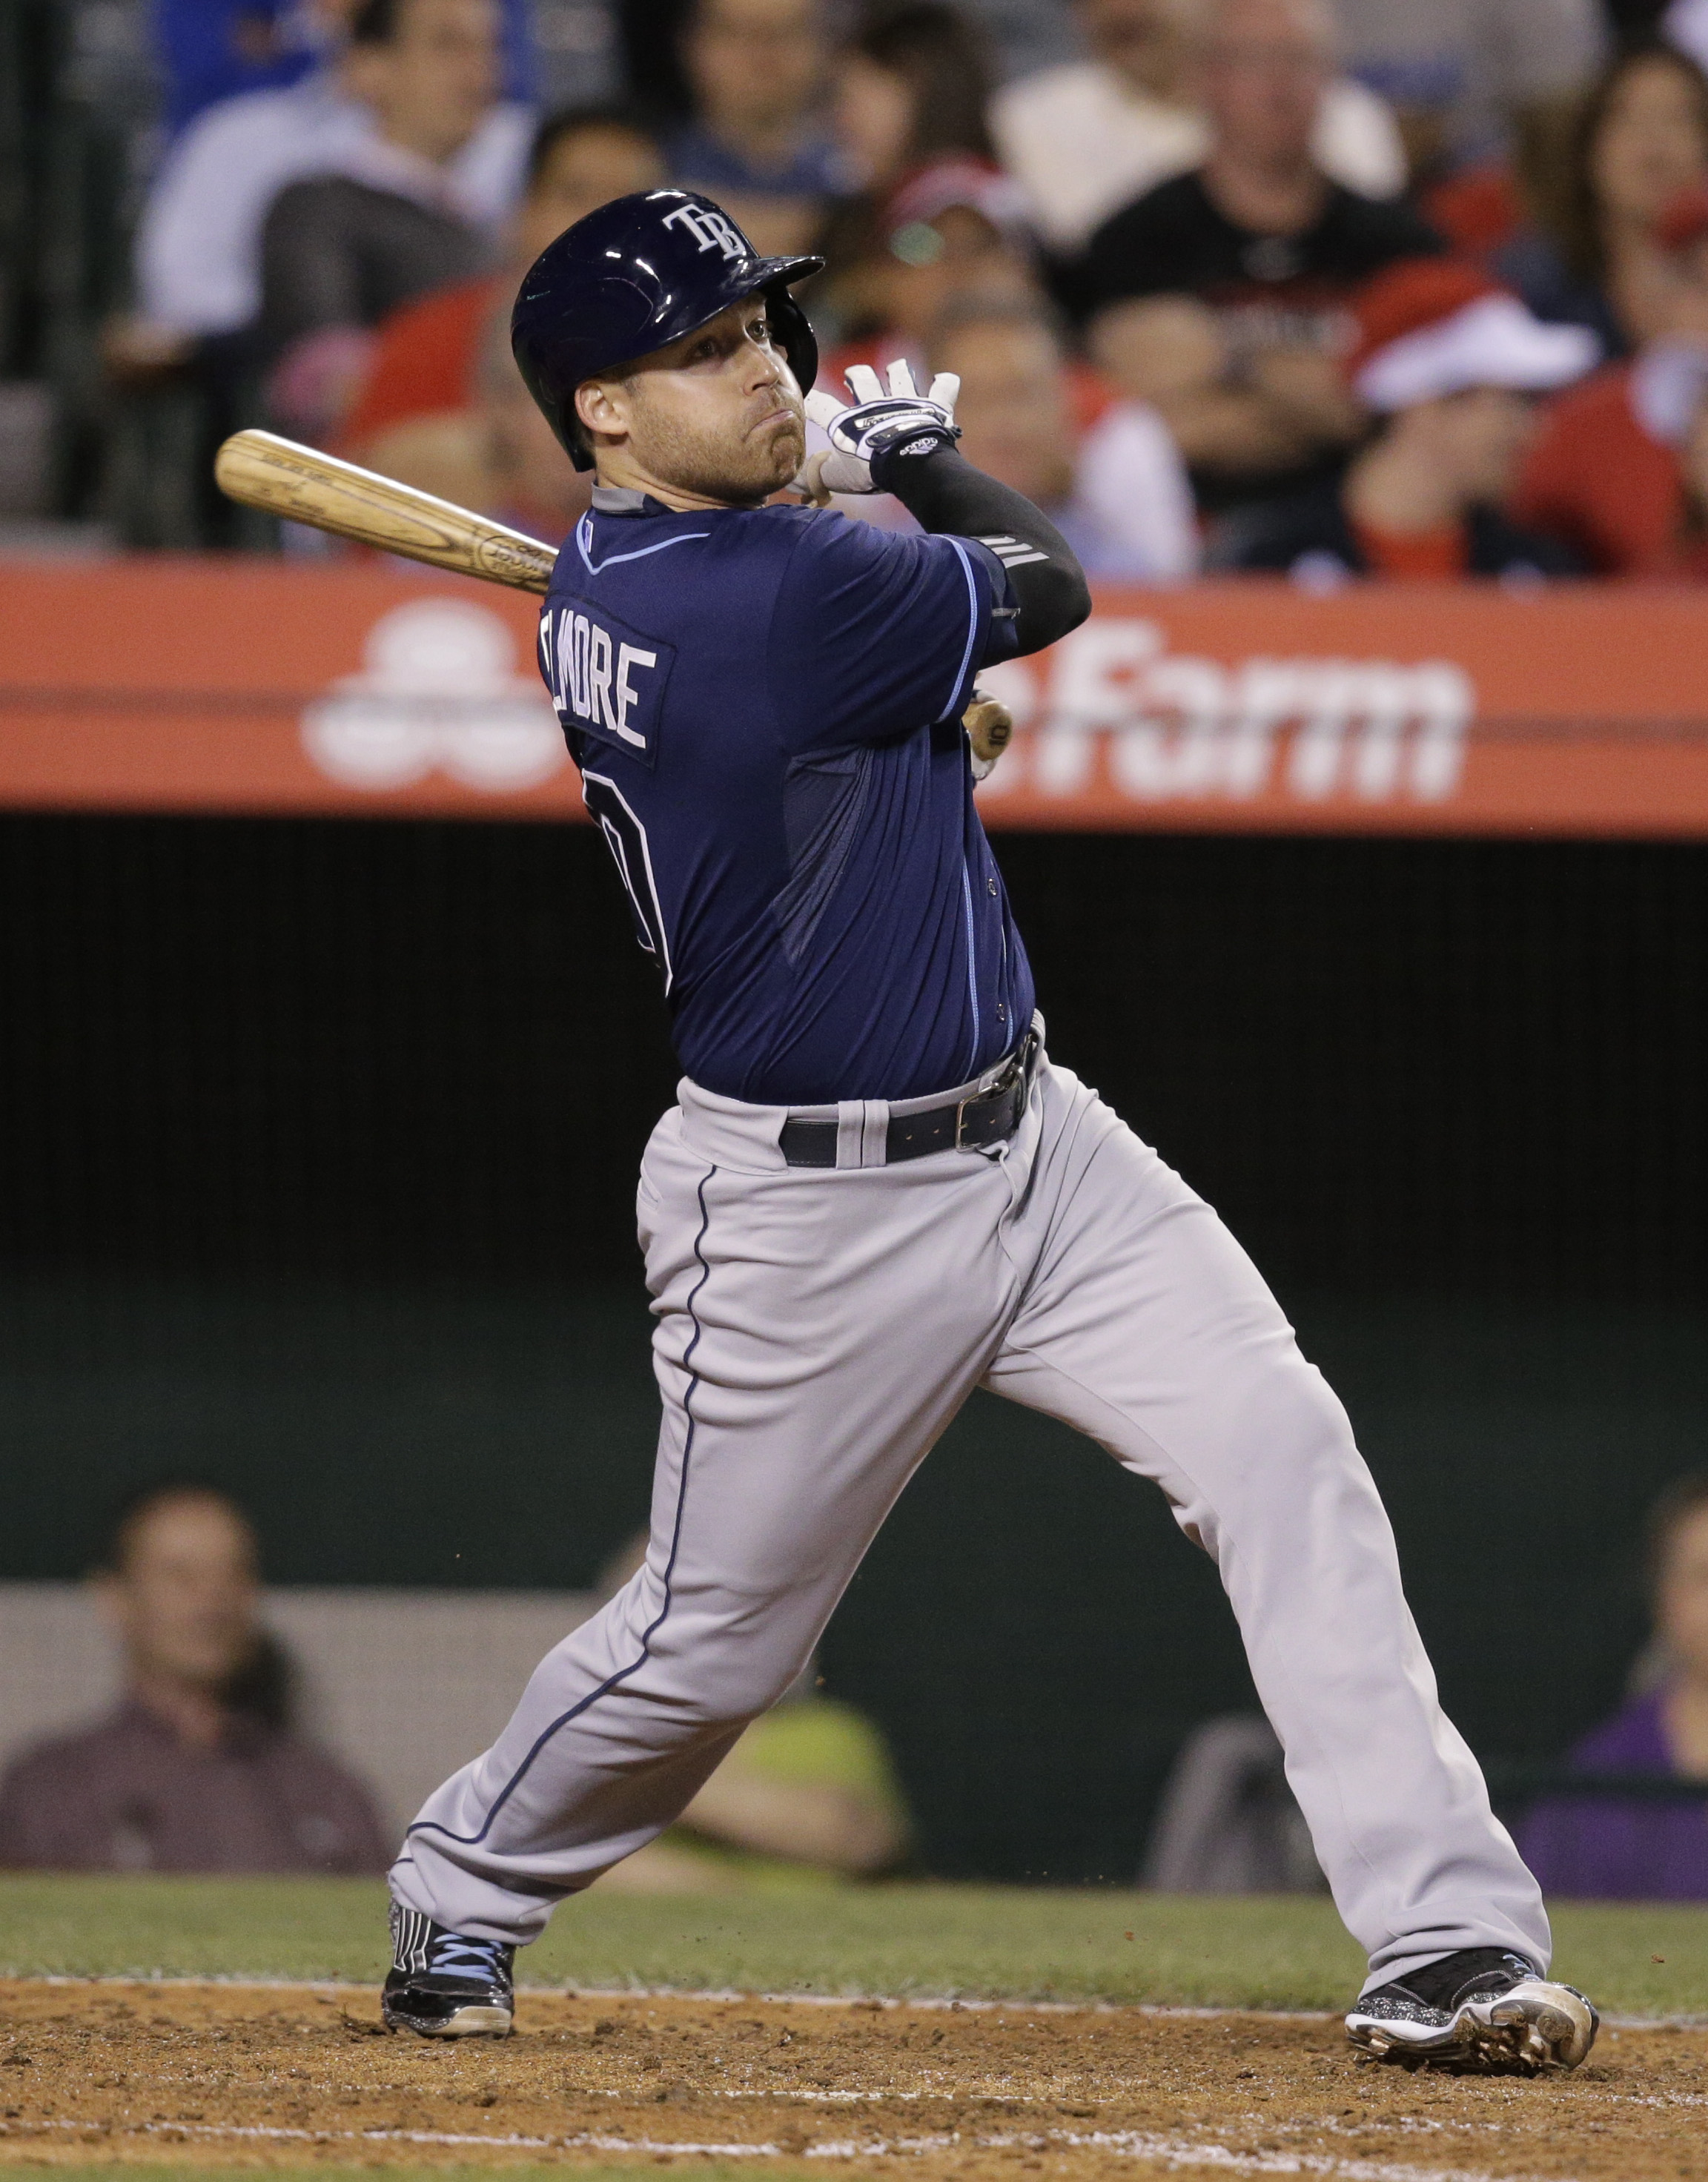 Tampa Bay Rays' Jake Elmore watches his two-run single during the sixth inning of a baseball game against the Los Angeles Angels, Tuesday, June 2, 2015, in Anaheim, Calif. (AP Photo/Jae C. Hong)